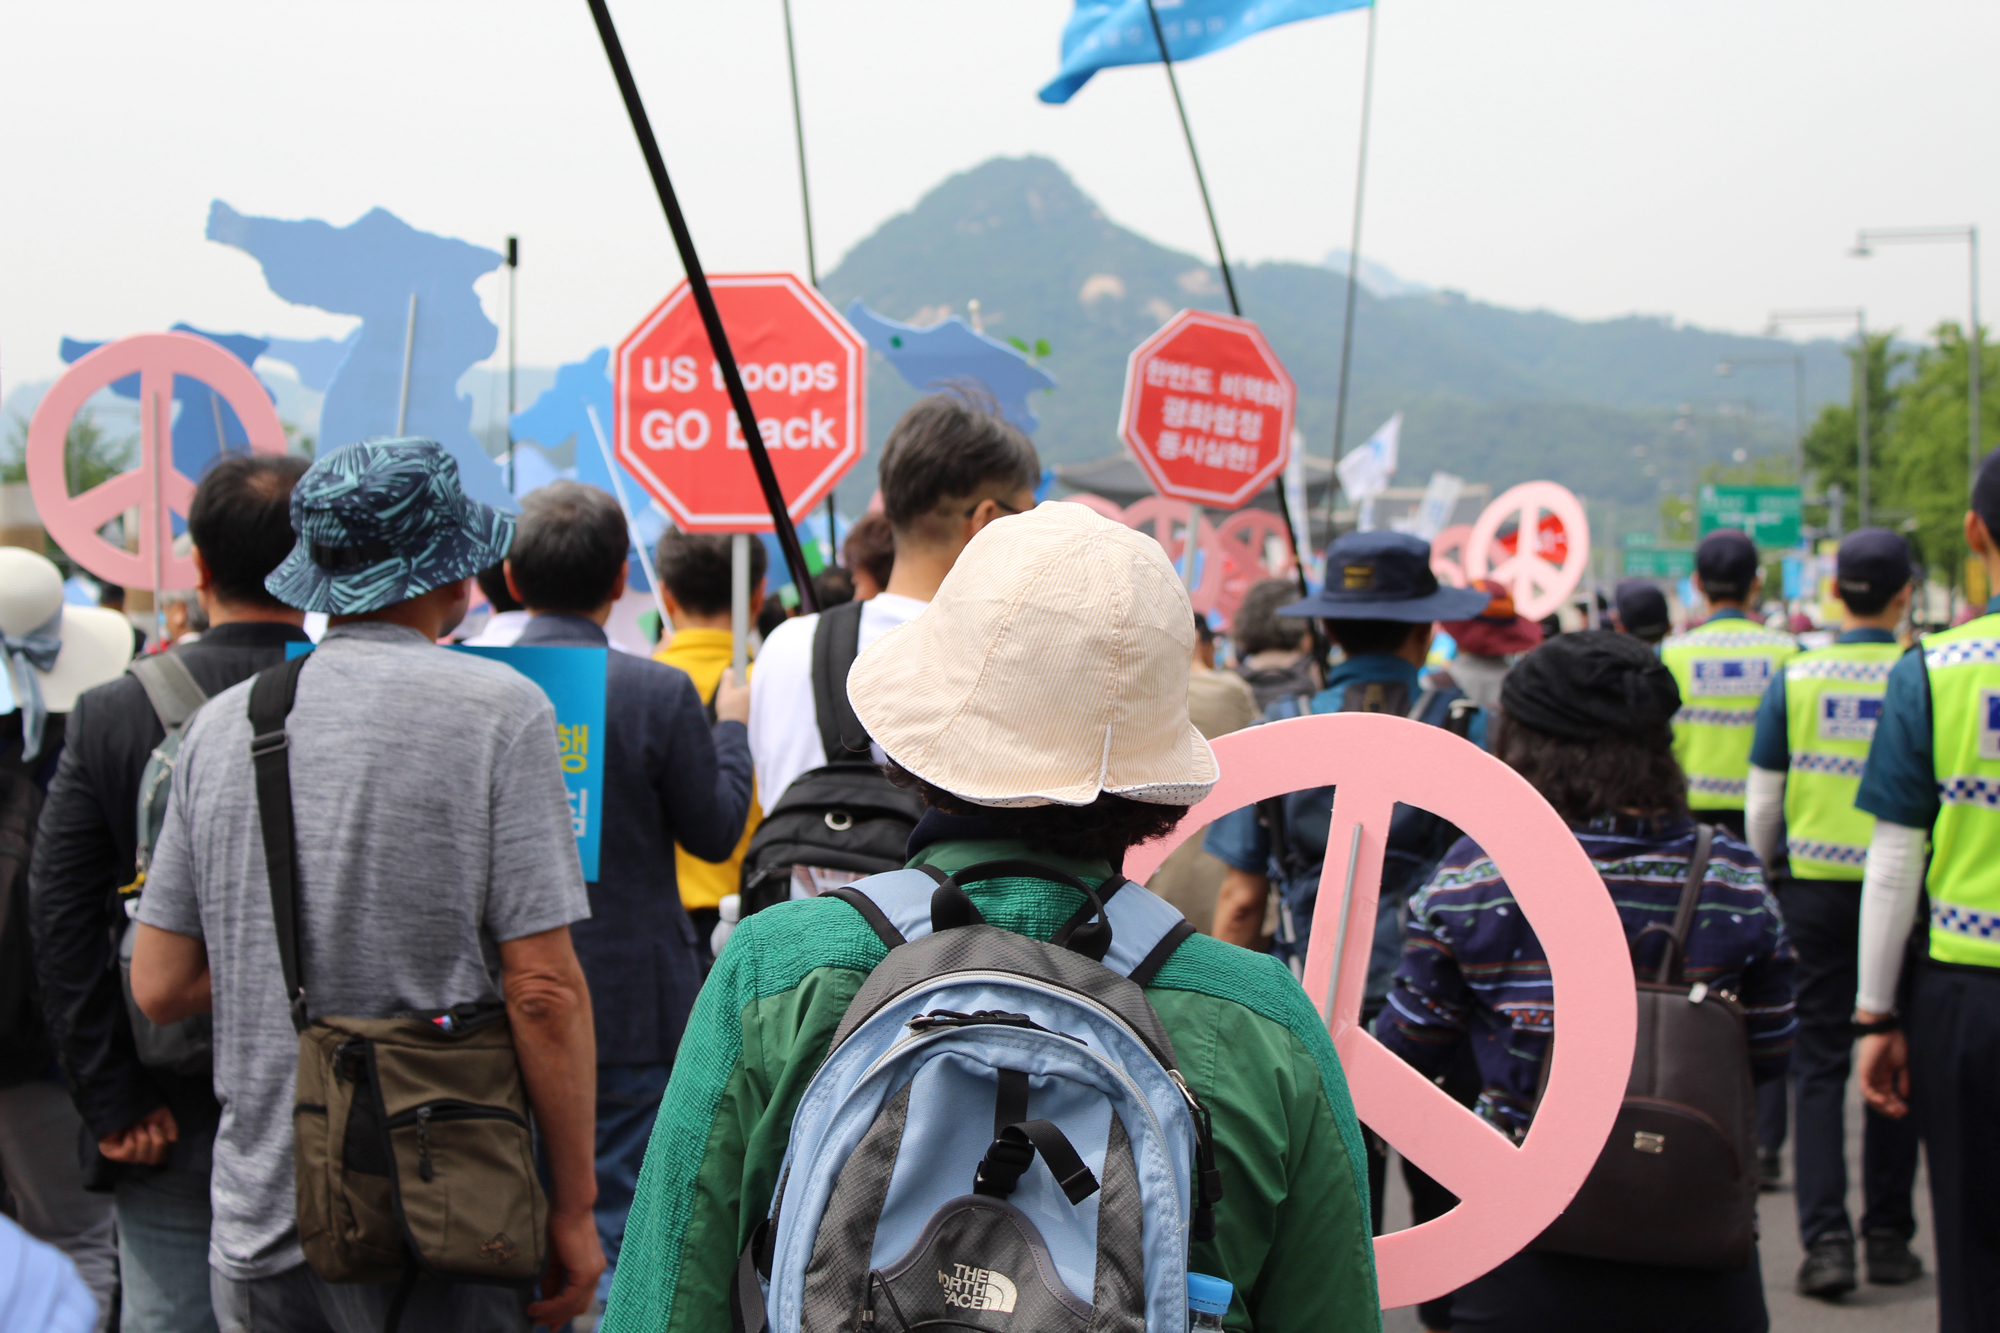 South Korean protestors calling for more engagement between the U.S. and North Korea march through Gwanghwamun Square on June 1, 2019. (Photo by Kelly Kasulis/GroundTruth)